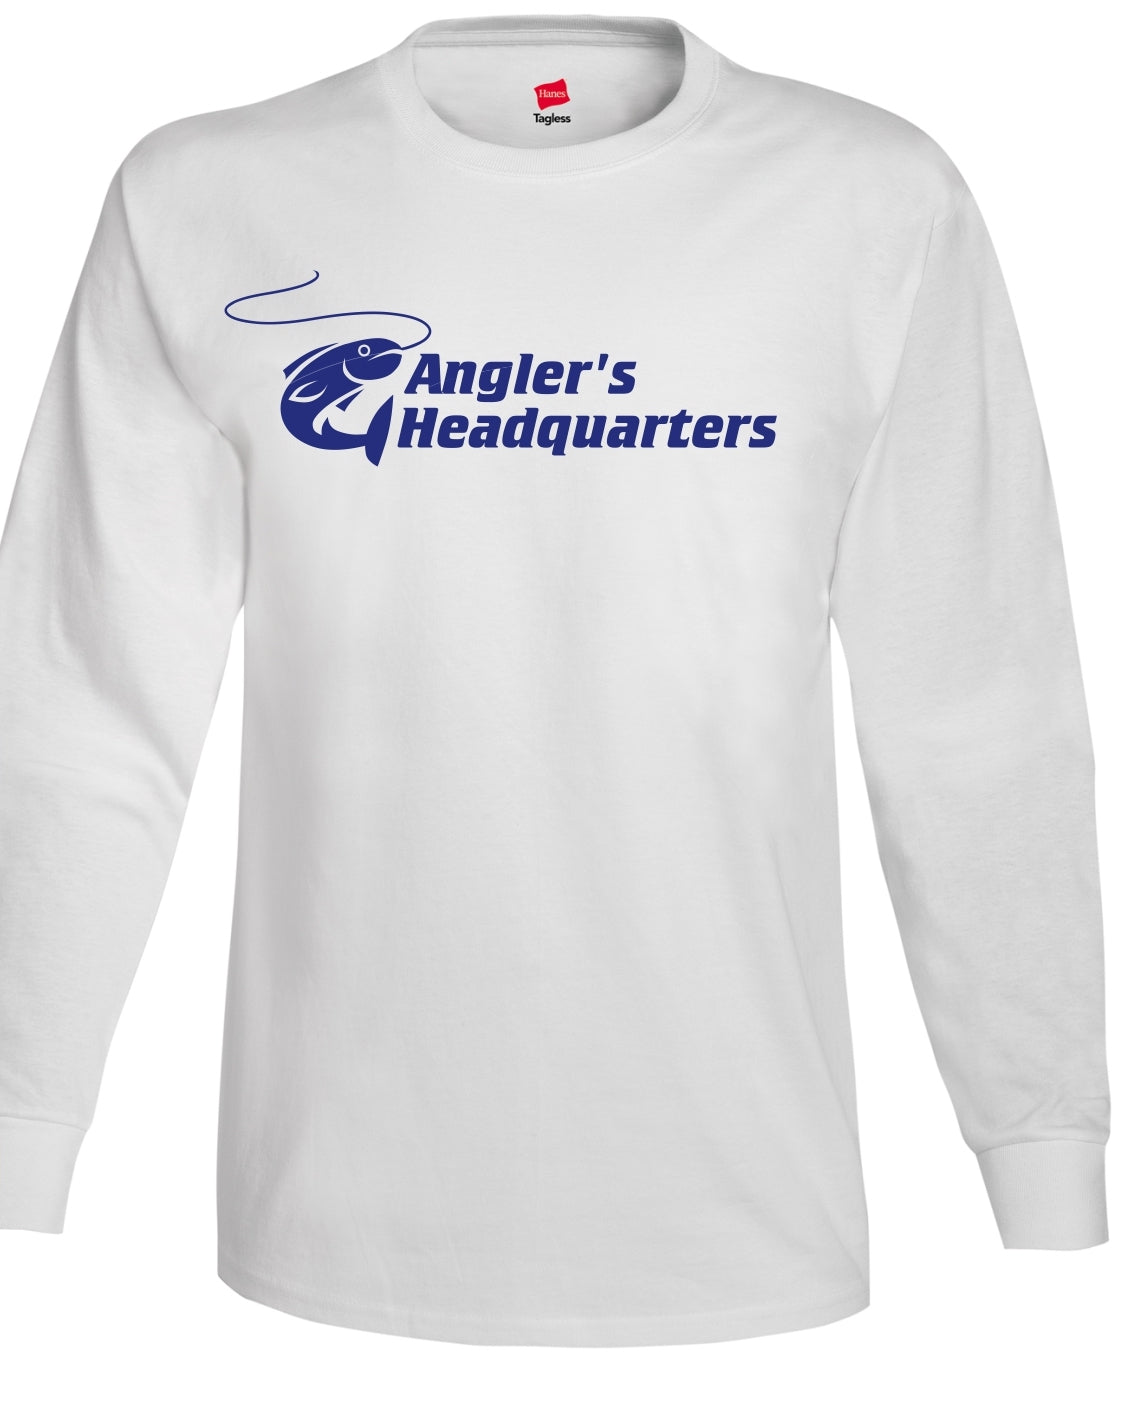 Angler's Headquarters T-Shirts (Long Sleeve) - Angler's Headquarters